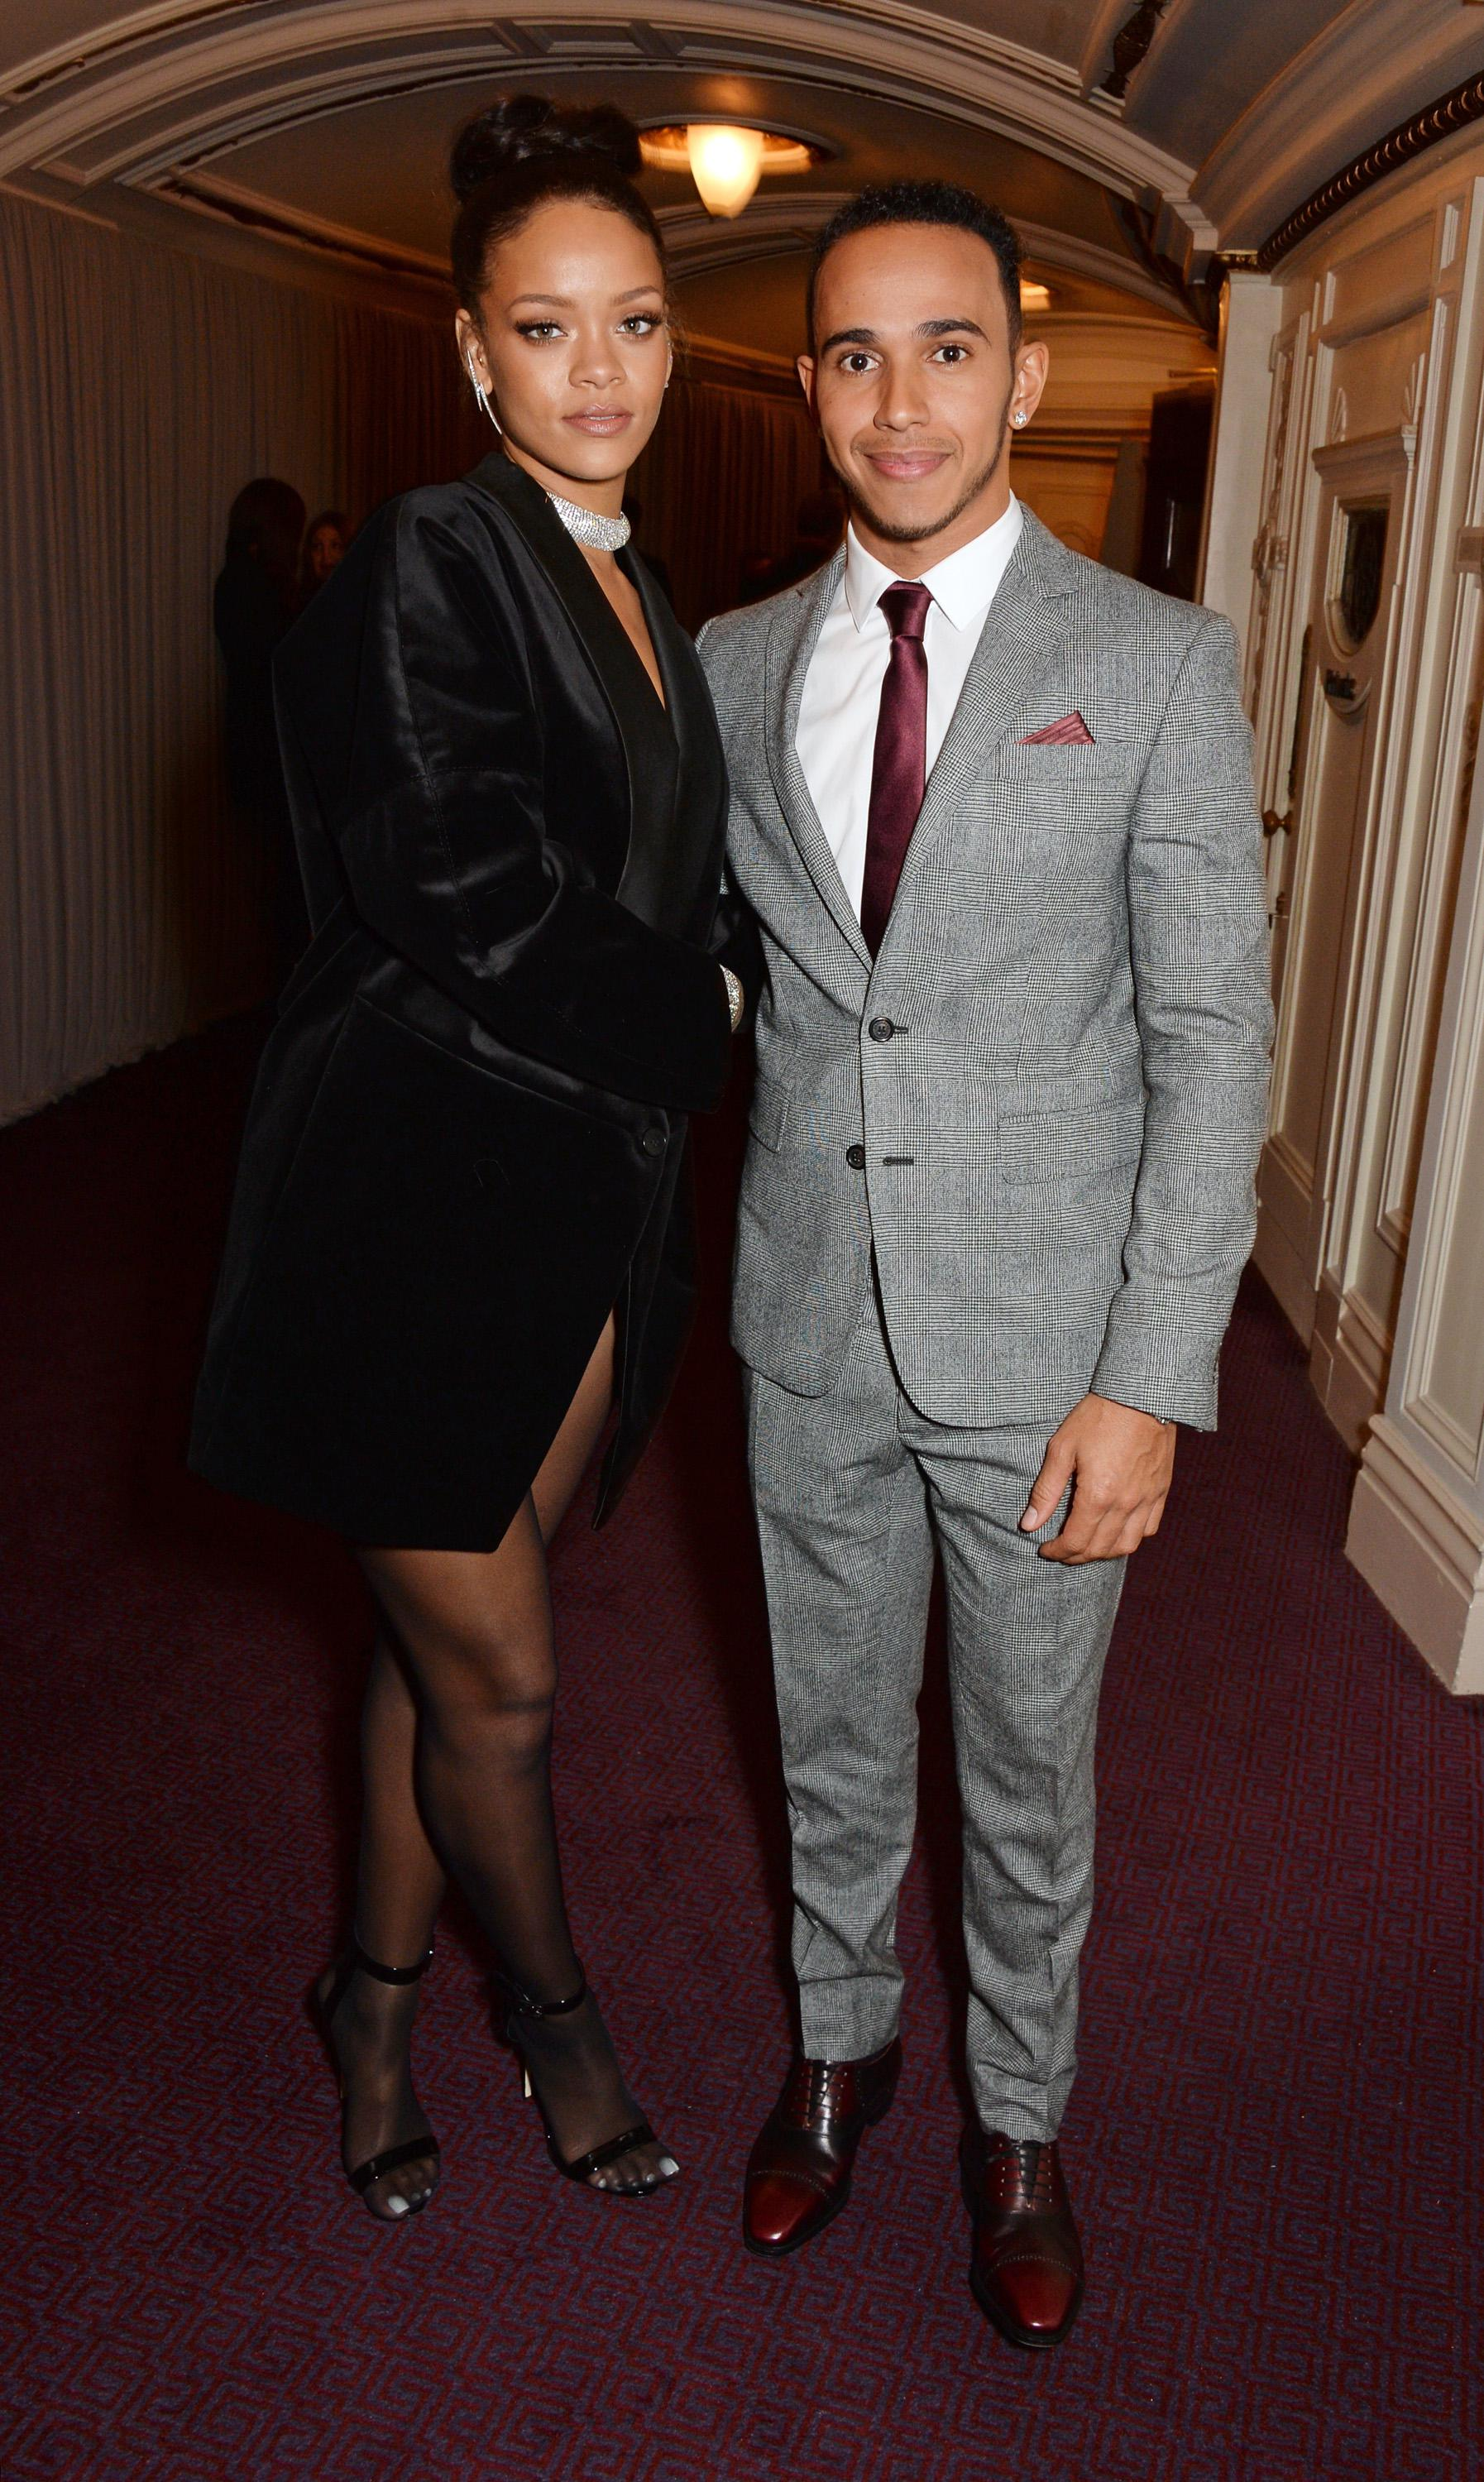 Rihanna was friends with Lewis for several years - and is rumoured to have taken things to the next level in summer 2015